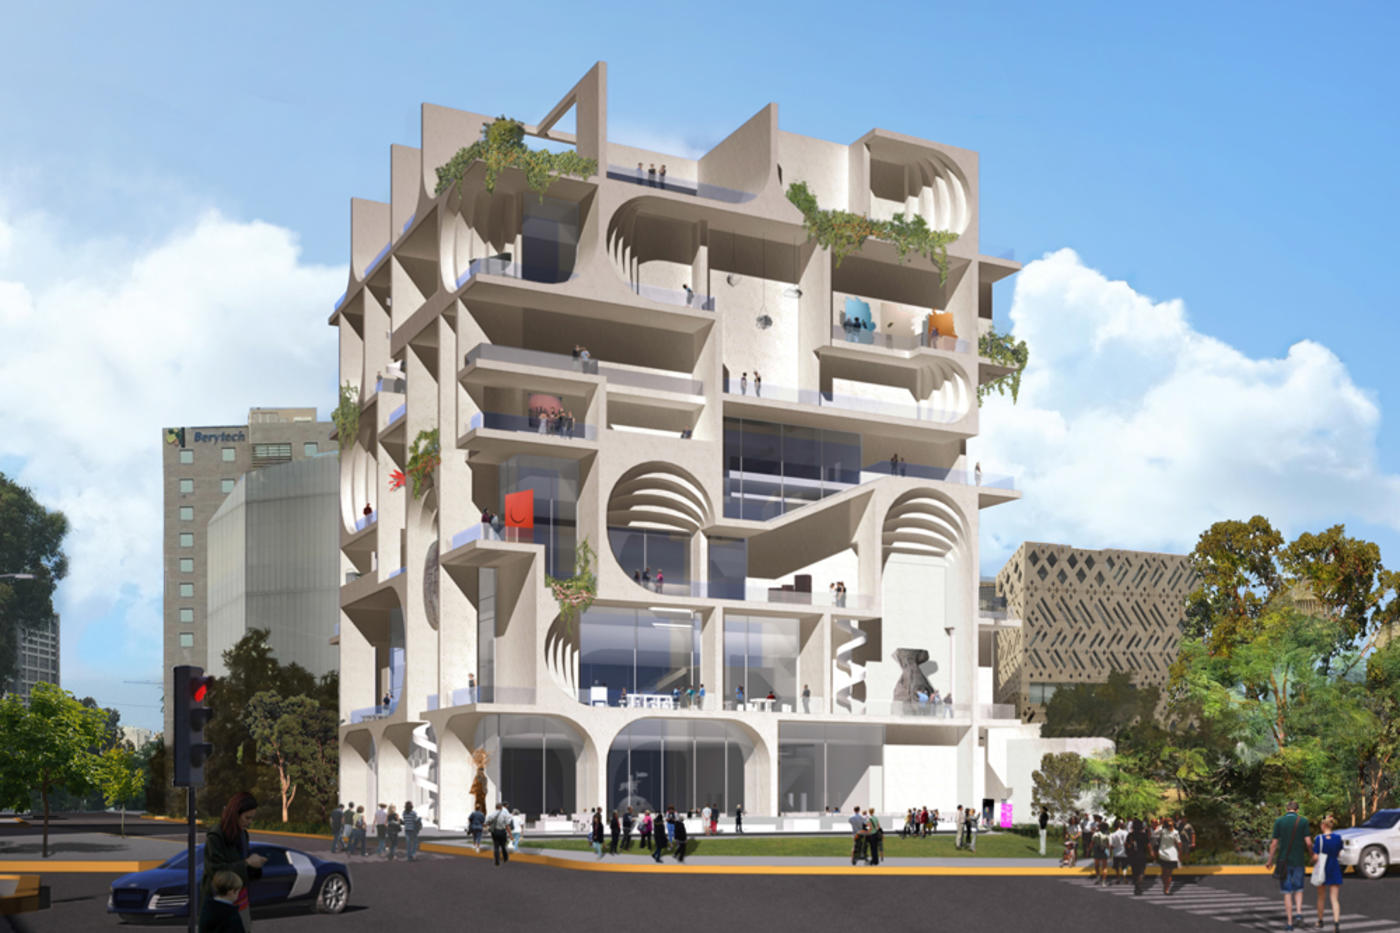 Rendering for the Beirut Museum of Art (exterior)